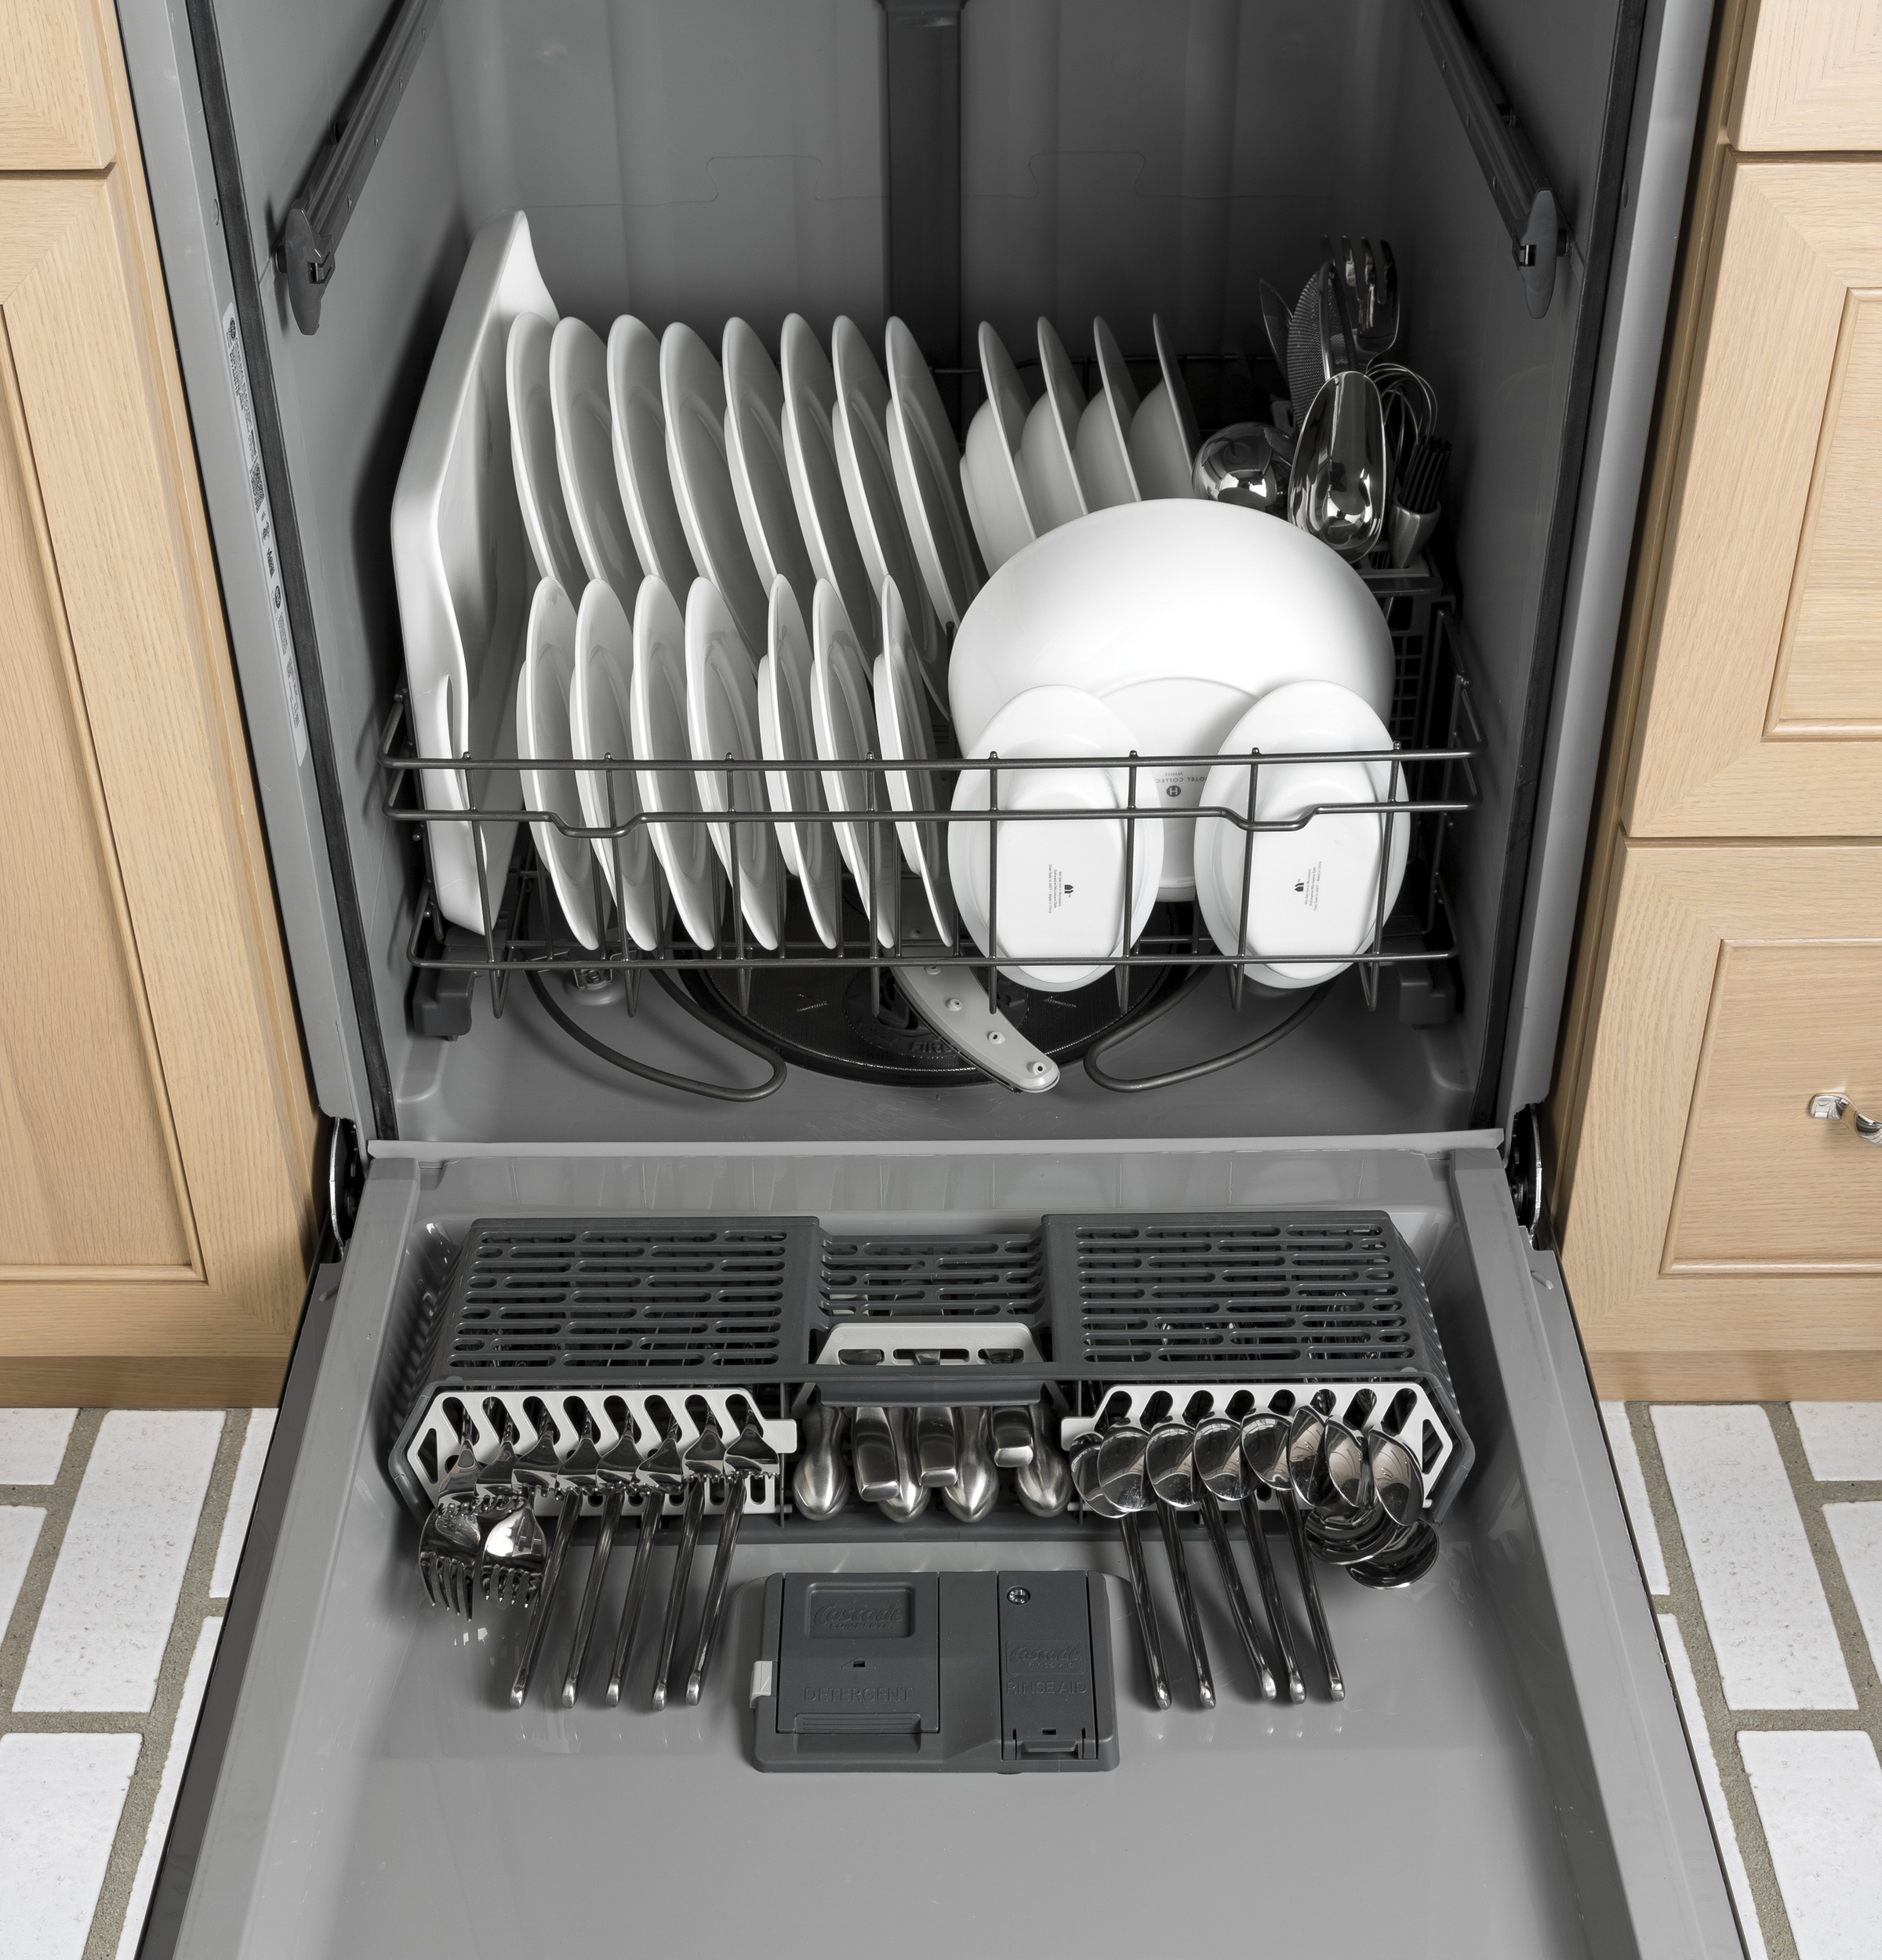 General Electric Dishwasher Troubleshooting Gear Dishwasher With Front Controls Gdf520psjss Ge Appliances